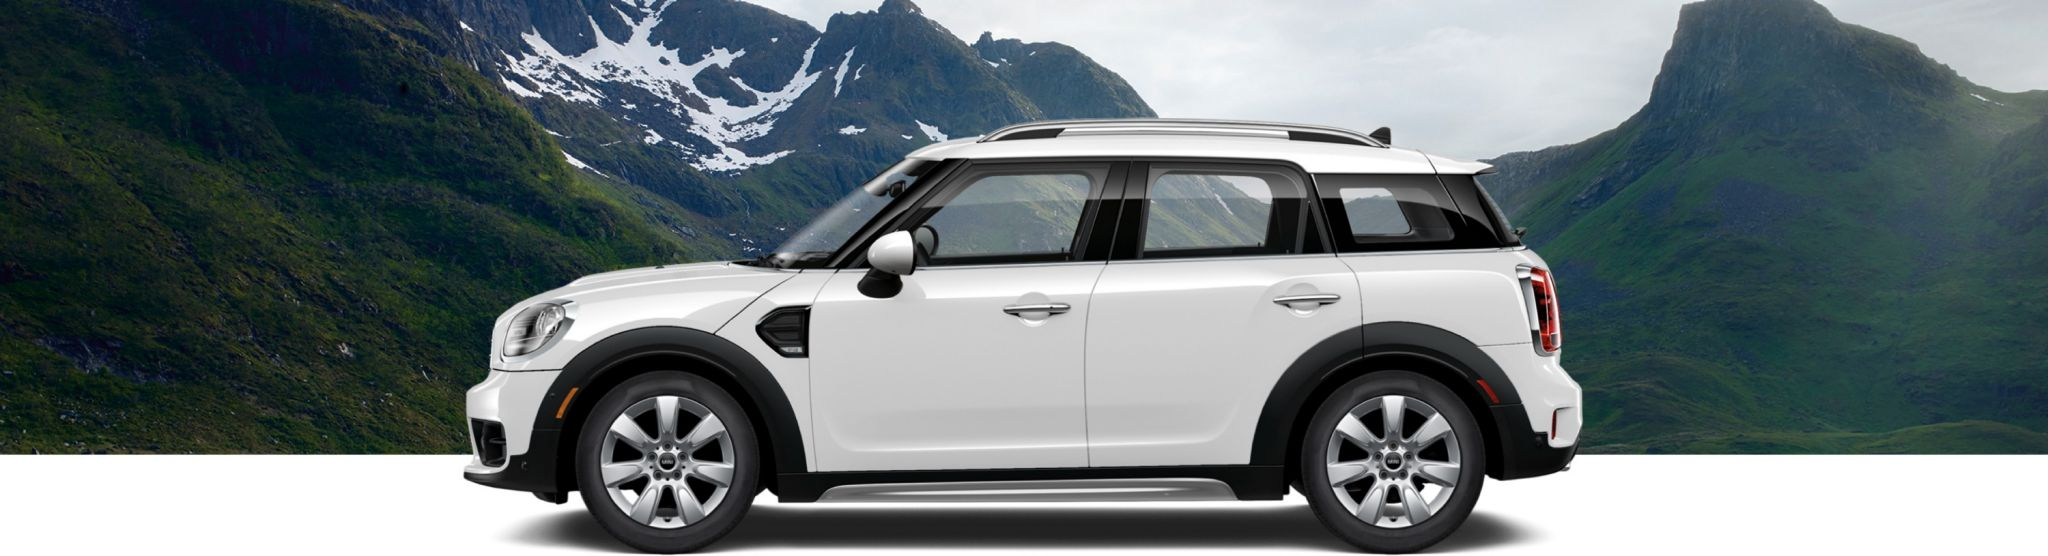 2018 MINI Countryman white side view